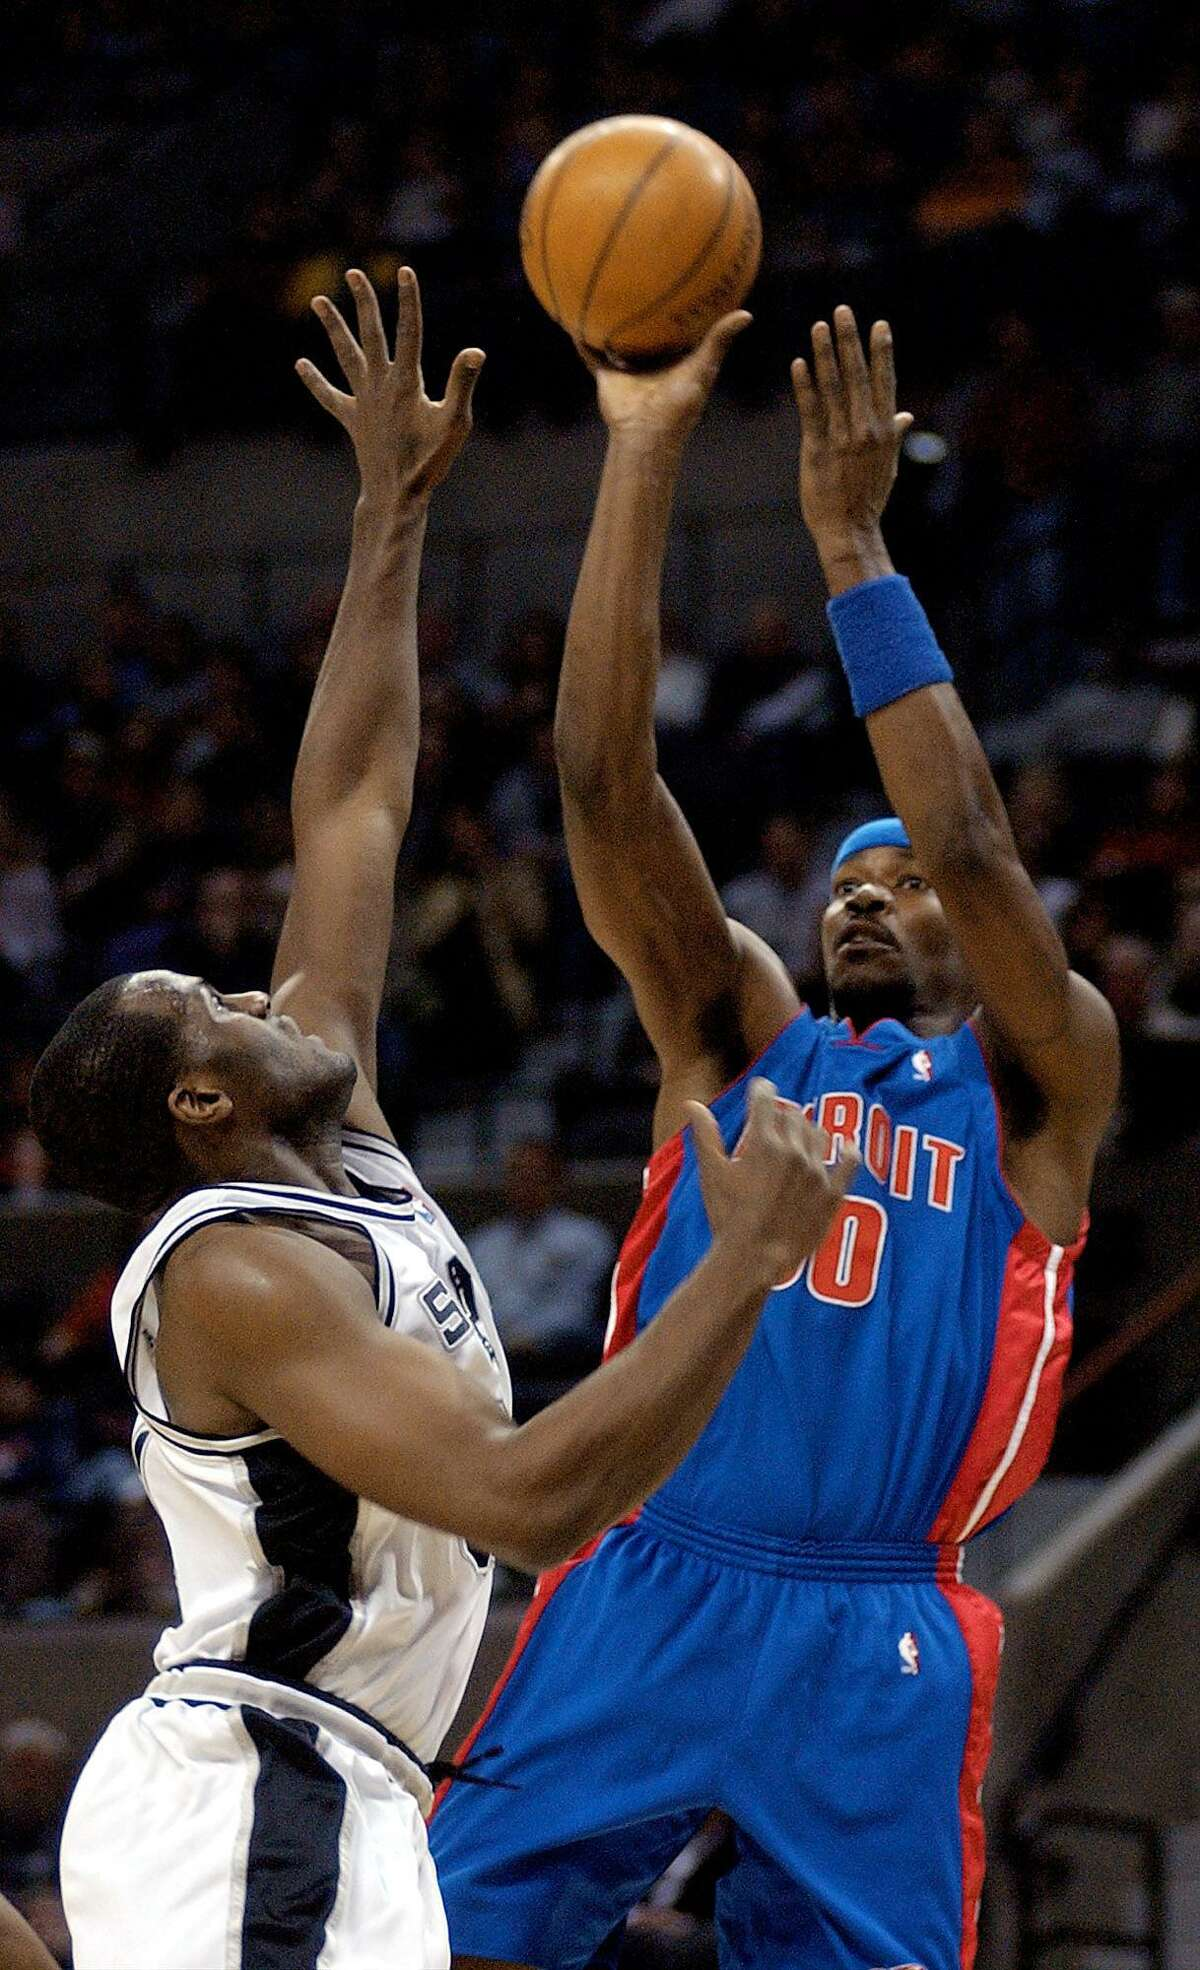 Detroit Pistons Clifford Robinson, right shots over the defense of San Antonio Spurs Malik Rose during first quarter action at the SBC Center In San Antonio Saturday January 25, 2002.